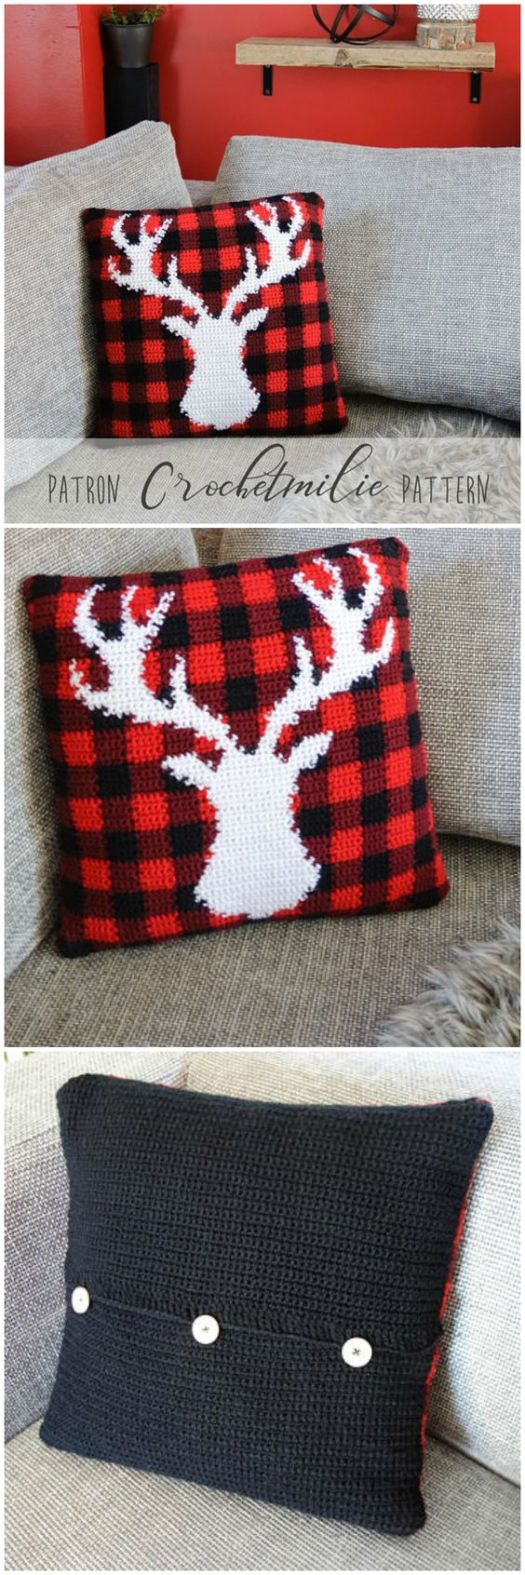 This crochet pattern for a buffalo plaid pillow cover with a deer silhouette is so great! What a fun throw pillow to make for the festive winter season! Great Christmas holiday decor! #crochet #plaid #pattern #yarn #diy #crafts #decor #craftevangelist